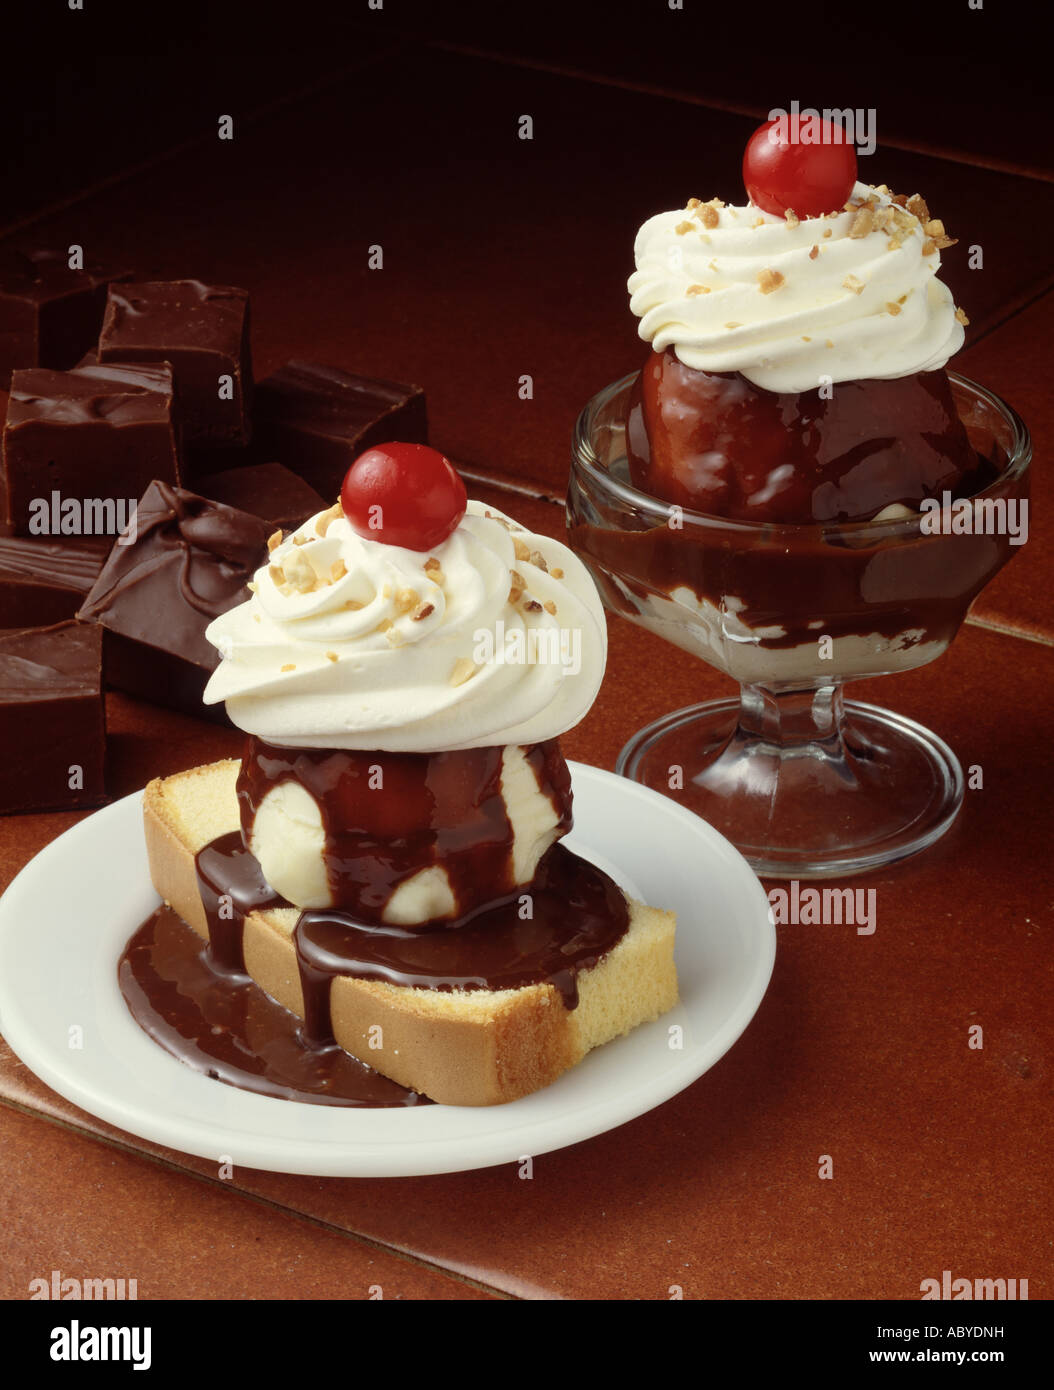 Chocolate Sauce With Whipping Cream - Best Chocolate 2017